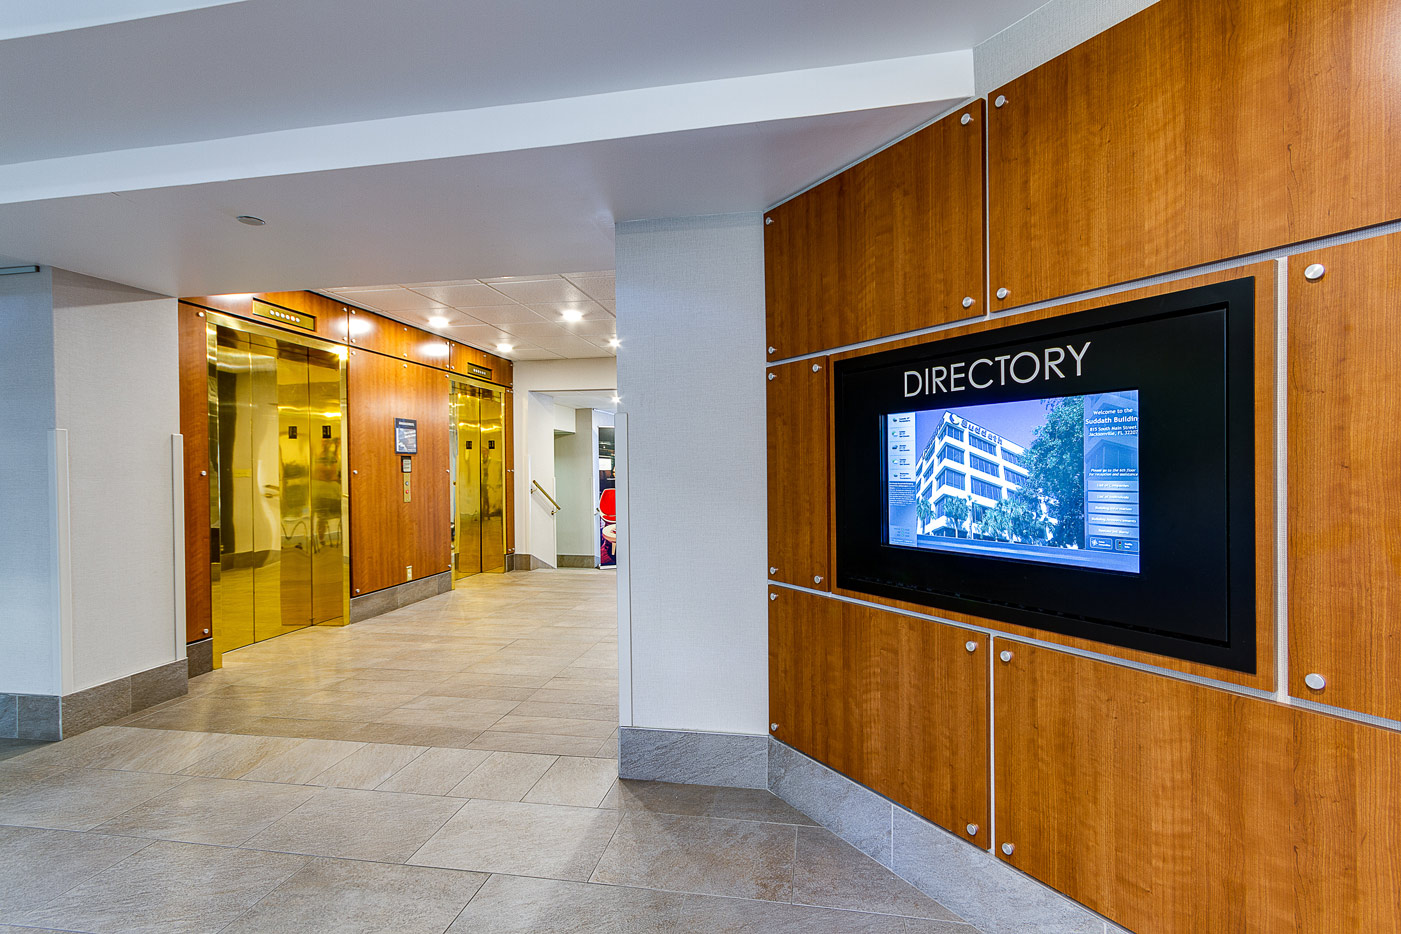 elevator lobby and building directory